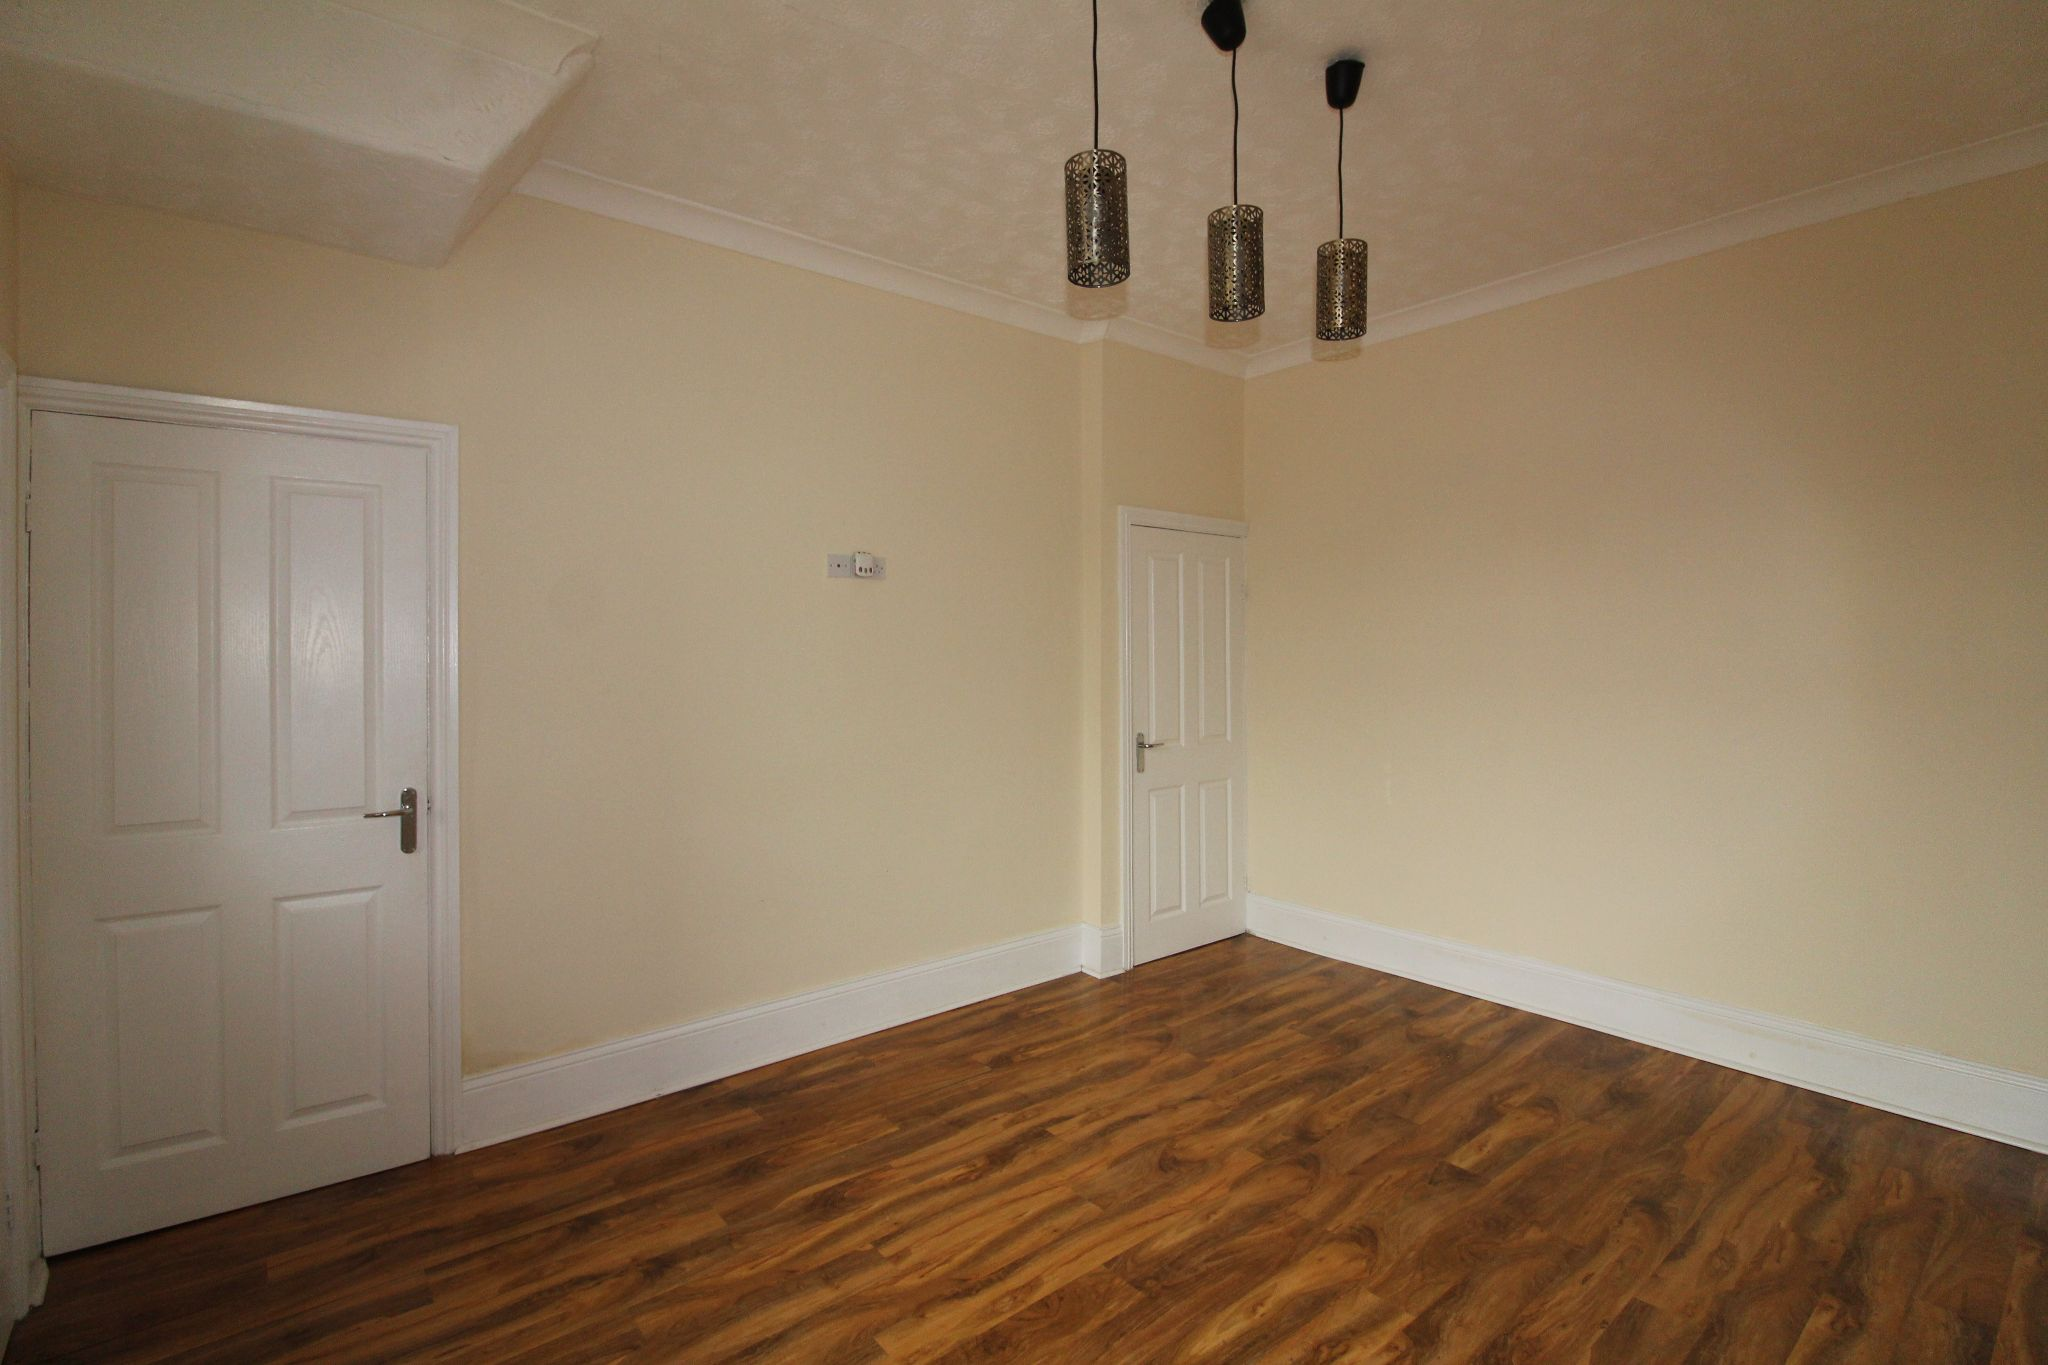 3 bedroom mid terraced house For Sale in Crook - Photograph 11.